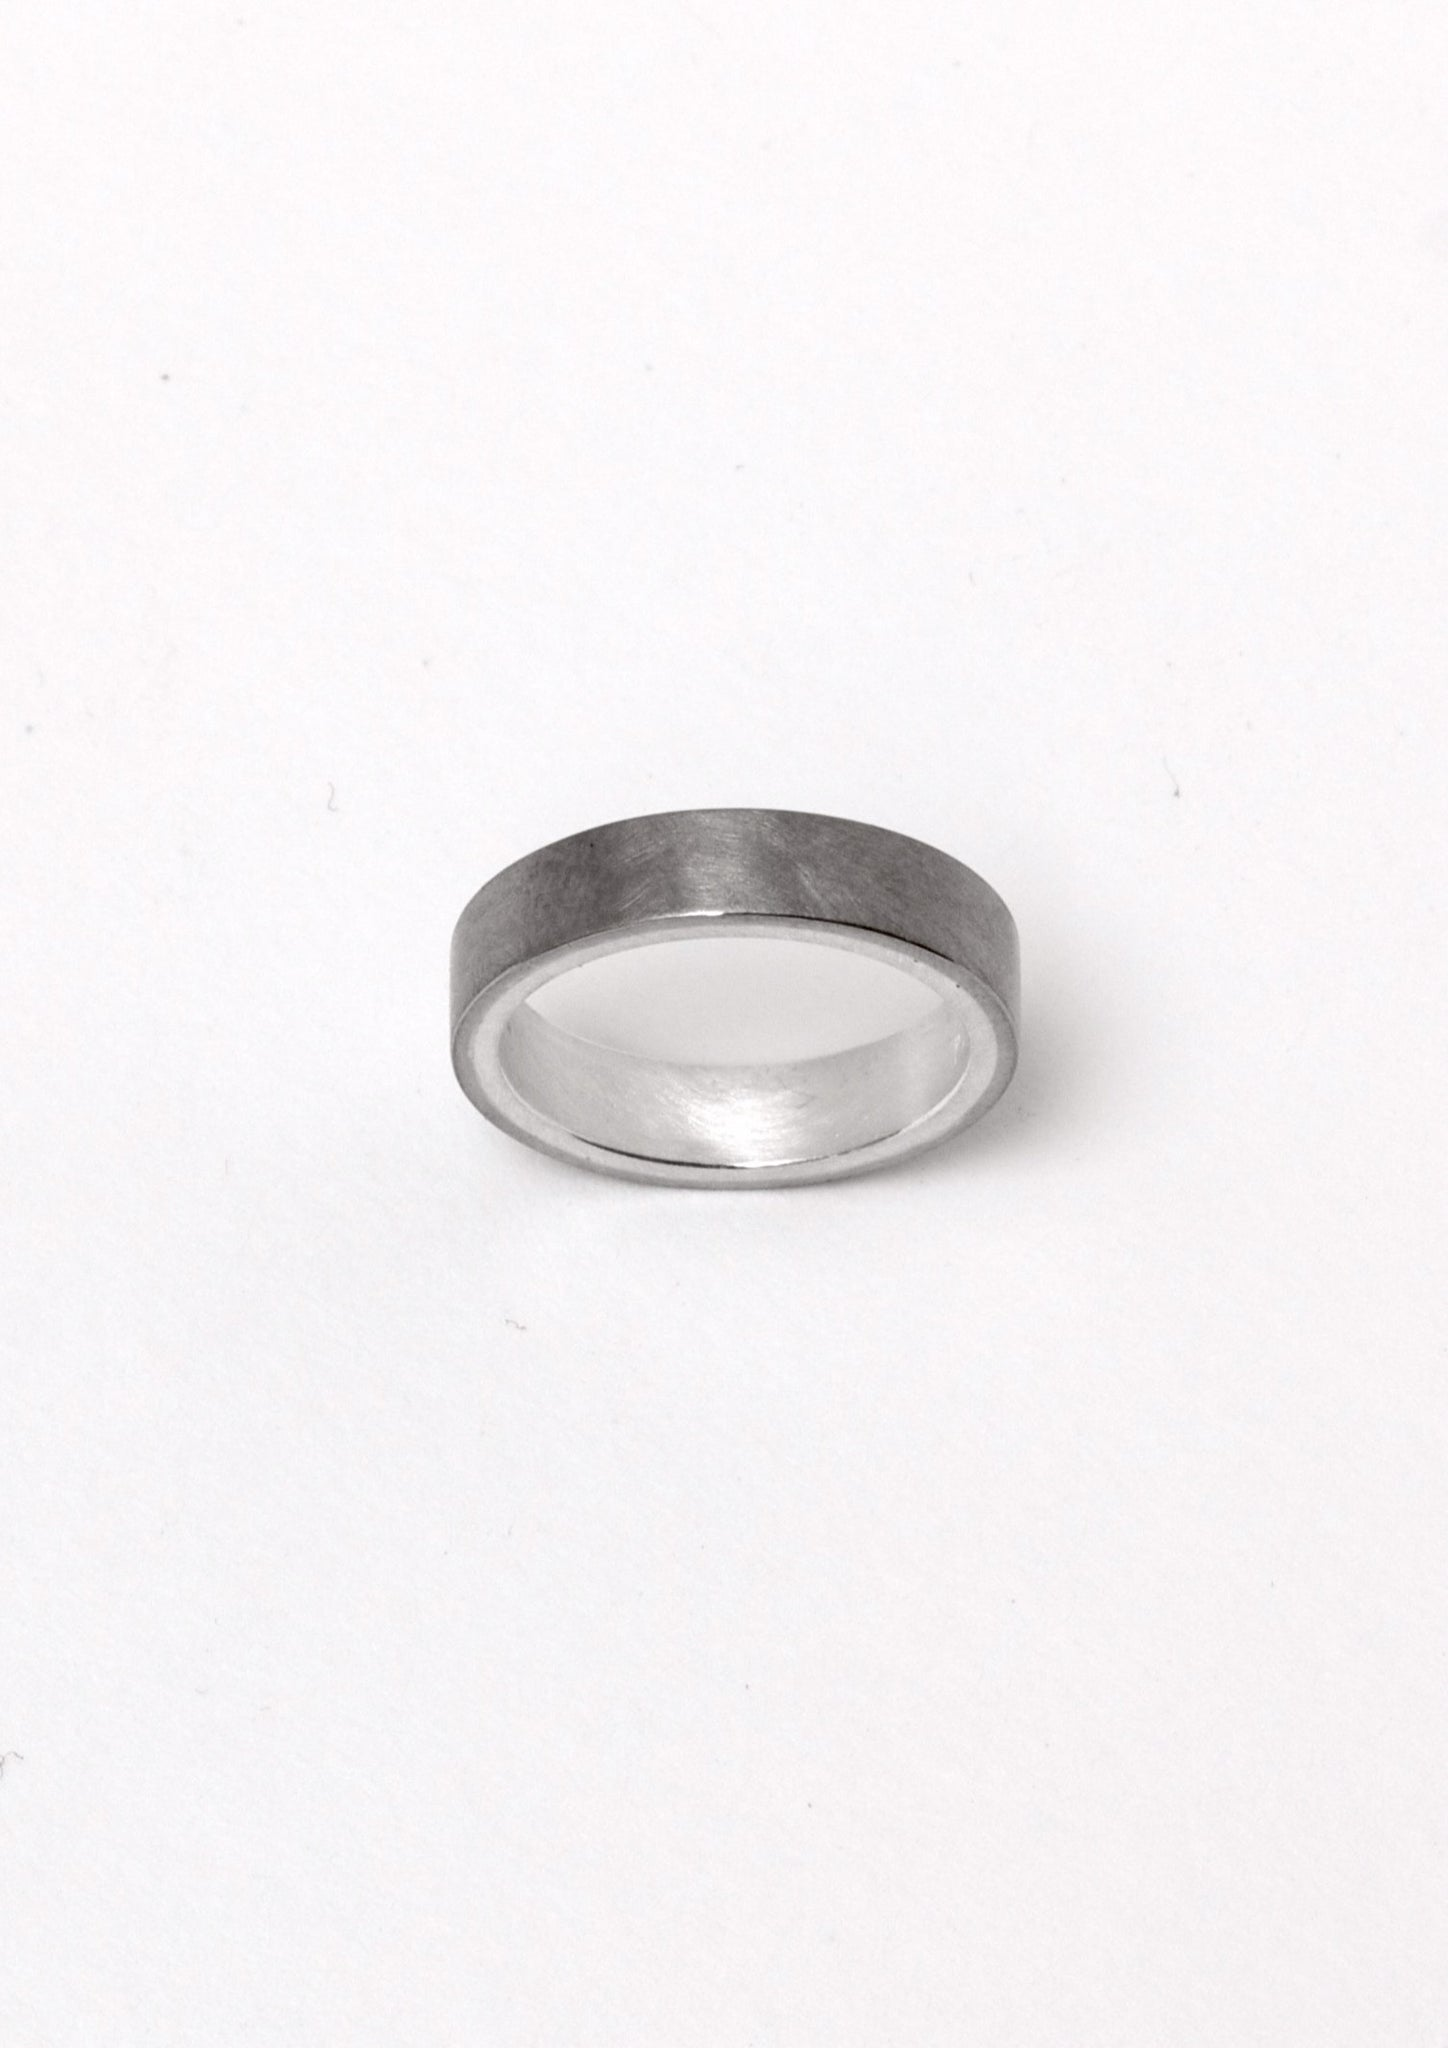 'Shades' White gold and Fine Silver Ring